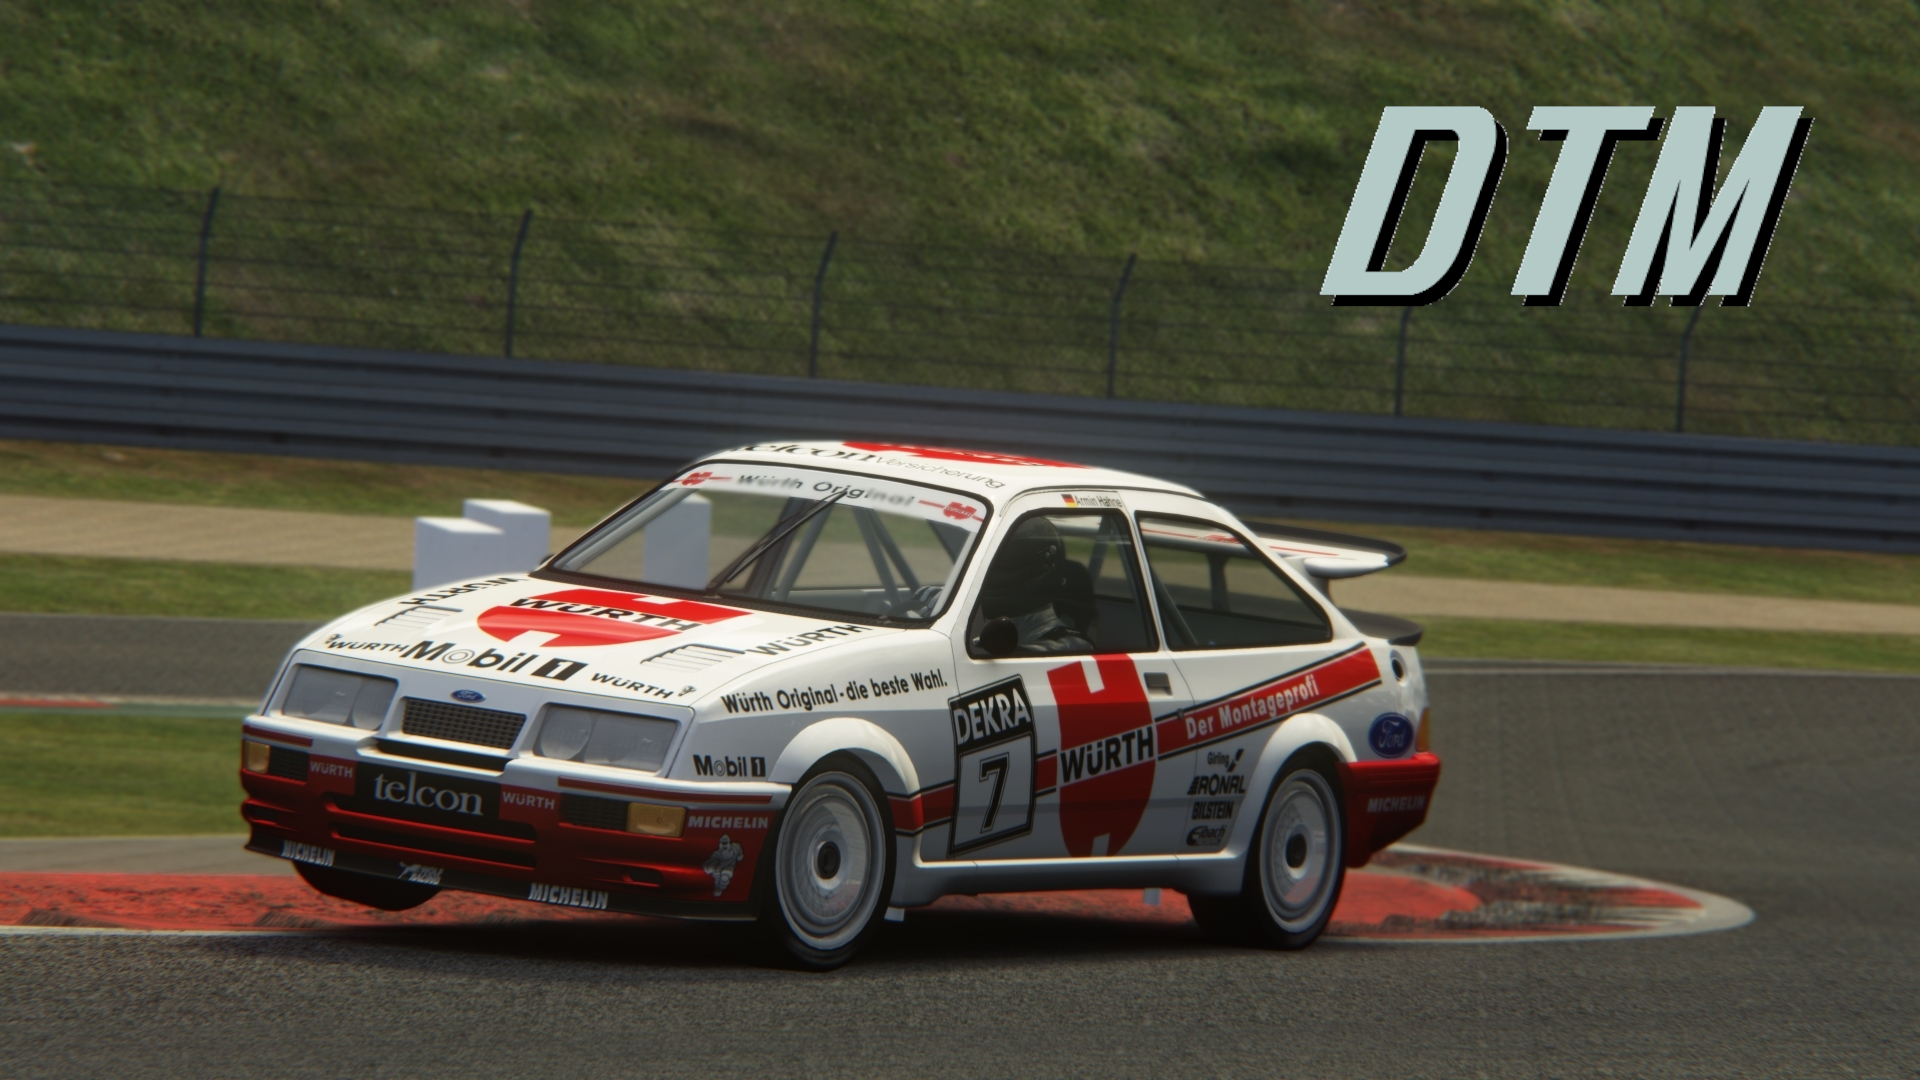 rs500 dtm picture.jpg